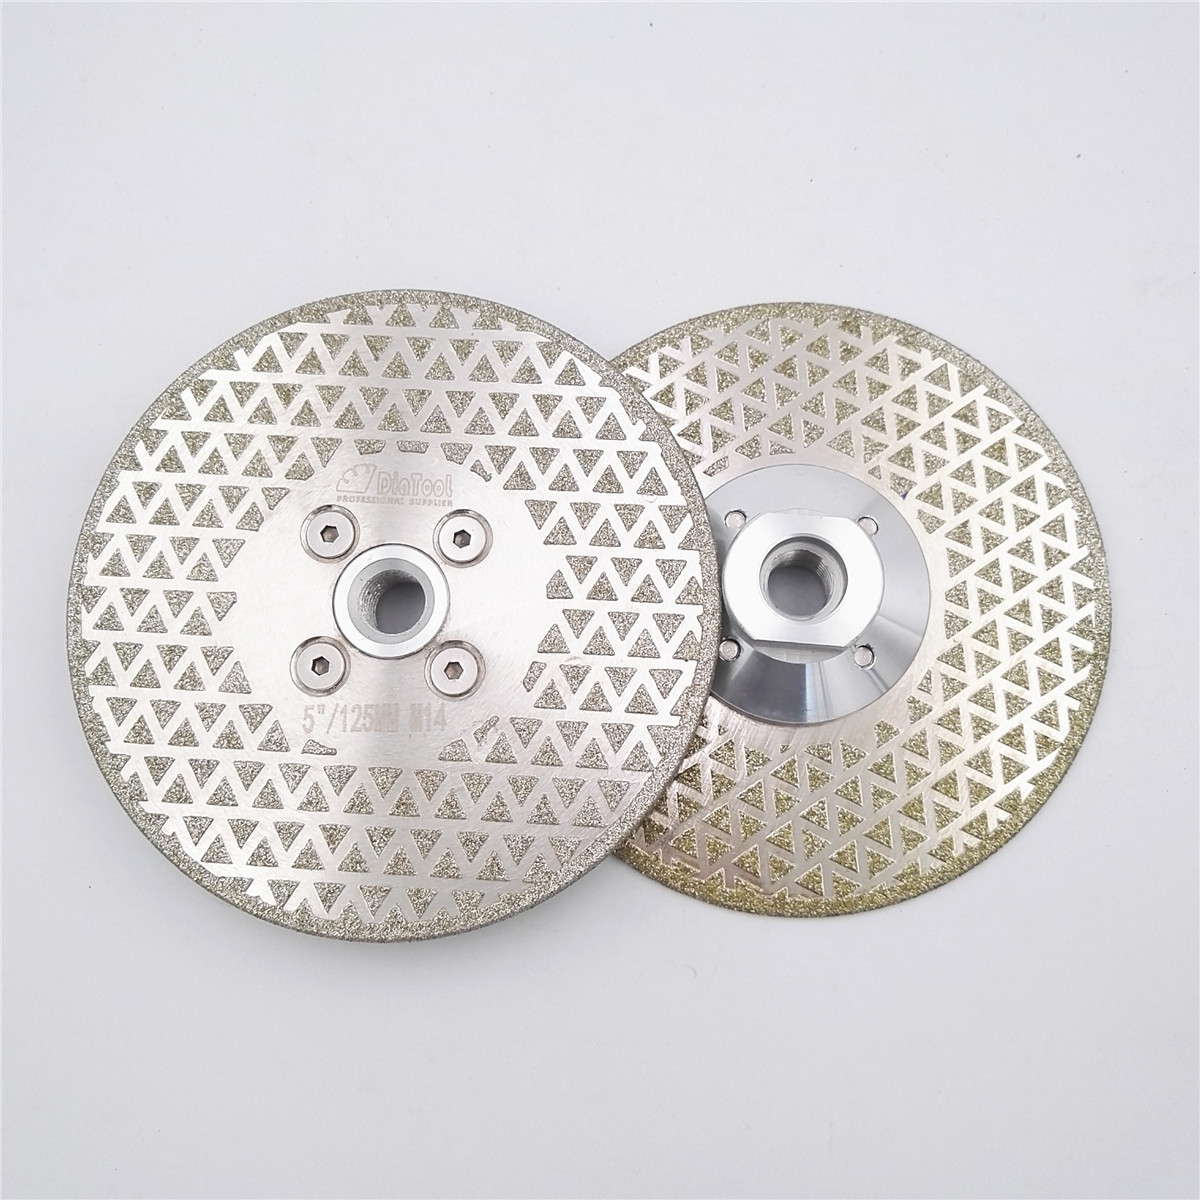 цена на DIATOOL 2pcs 5 electroplated diamond cutting and grinding disc for granite marble with double grinding sides M14 Flange